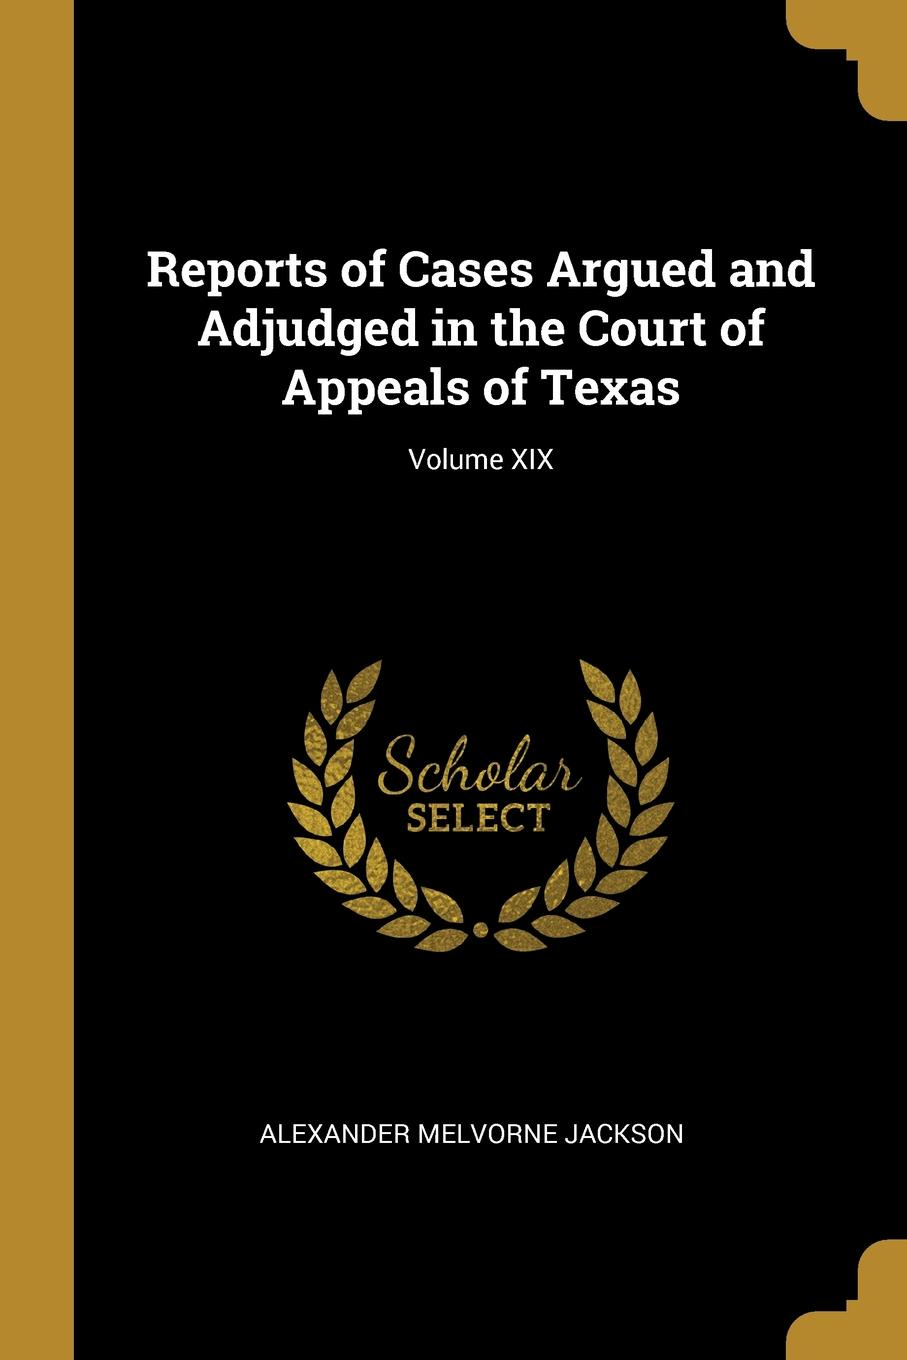 Alexander Melvorne Jackson Reports of Cases Argued and Adjudged in the Court of Appeals of Texas; Volume XIX